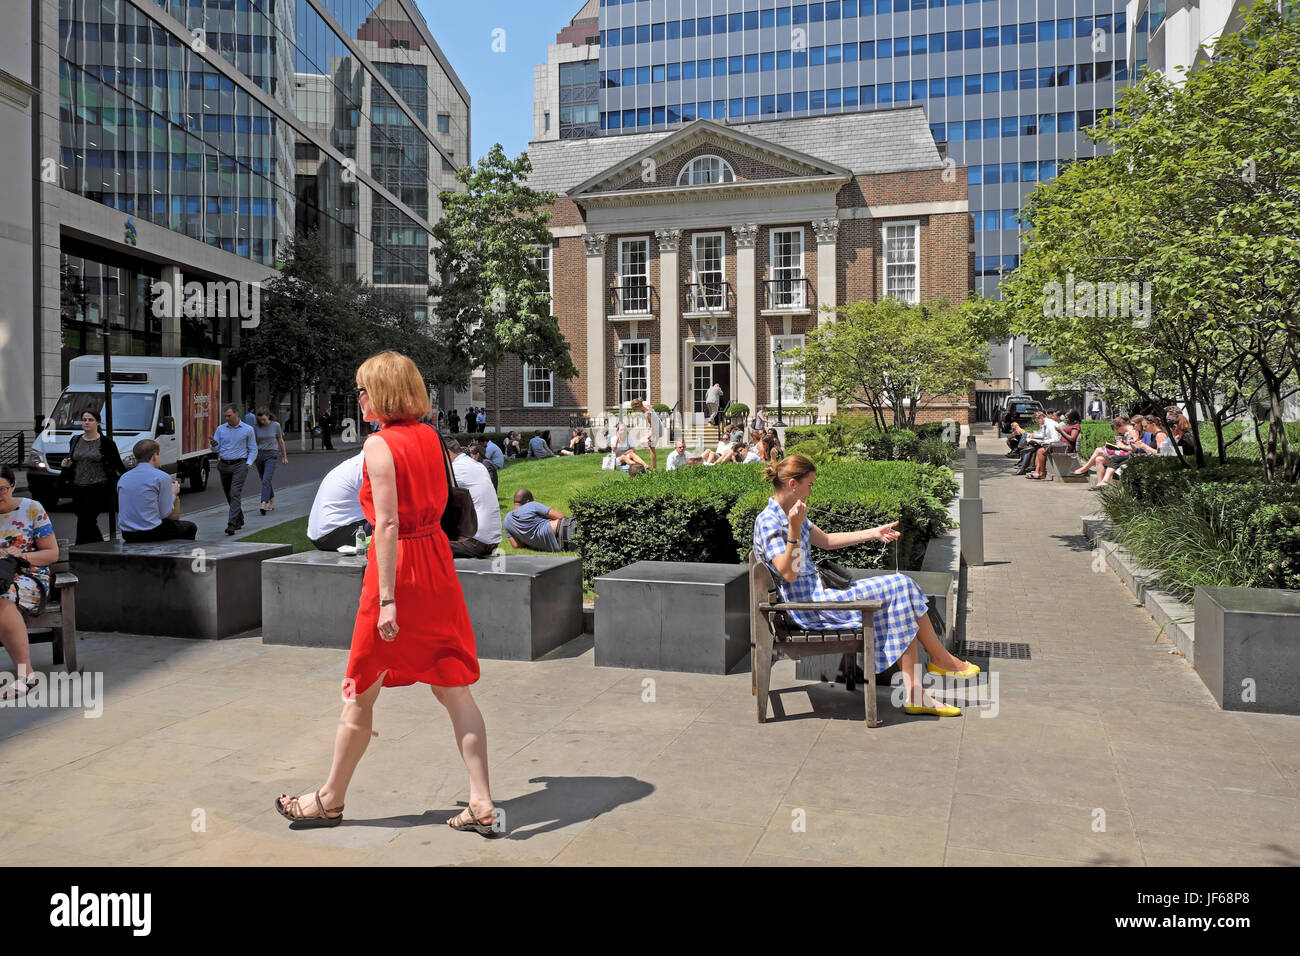 Office workers sitting outside in Girdlers Gardens in summer at lunchtime Basinghall Street Moorgate in the City - Stock Image